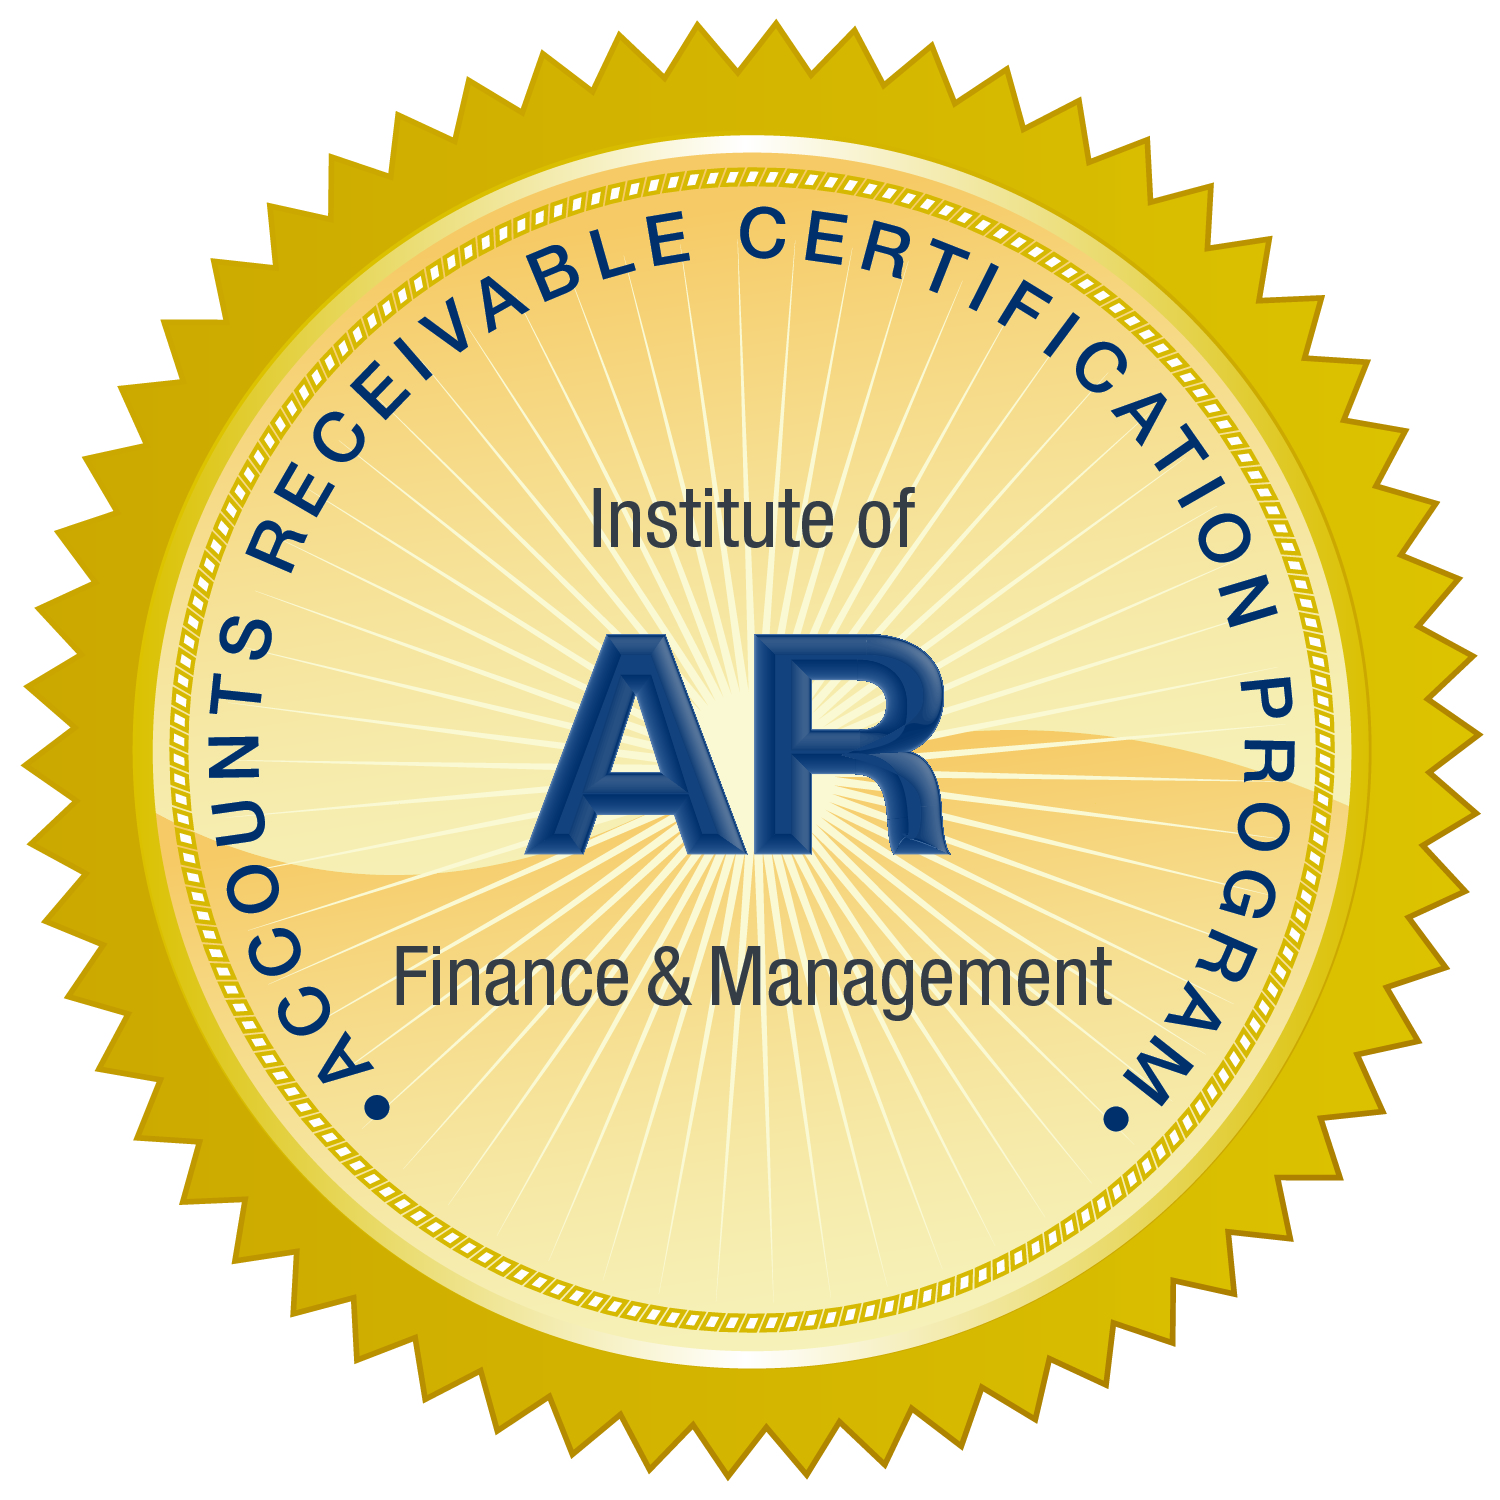 AR Certification